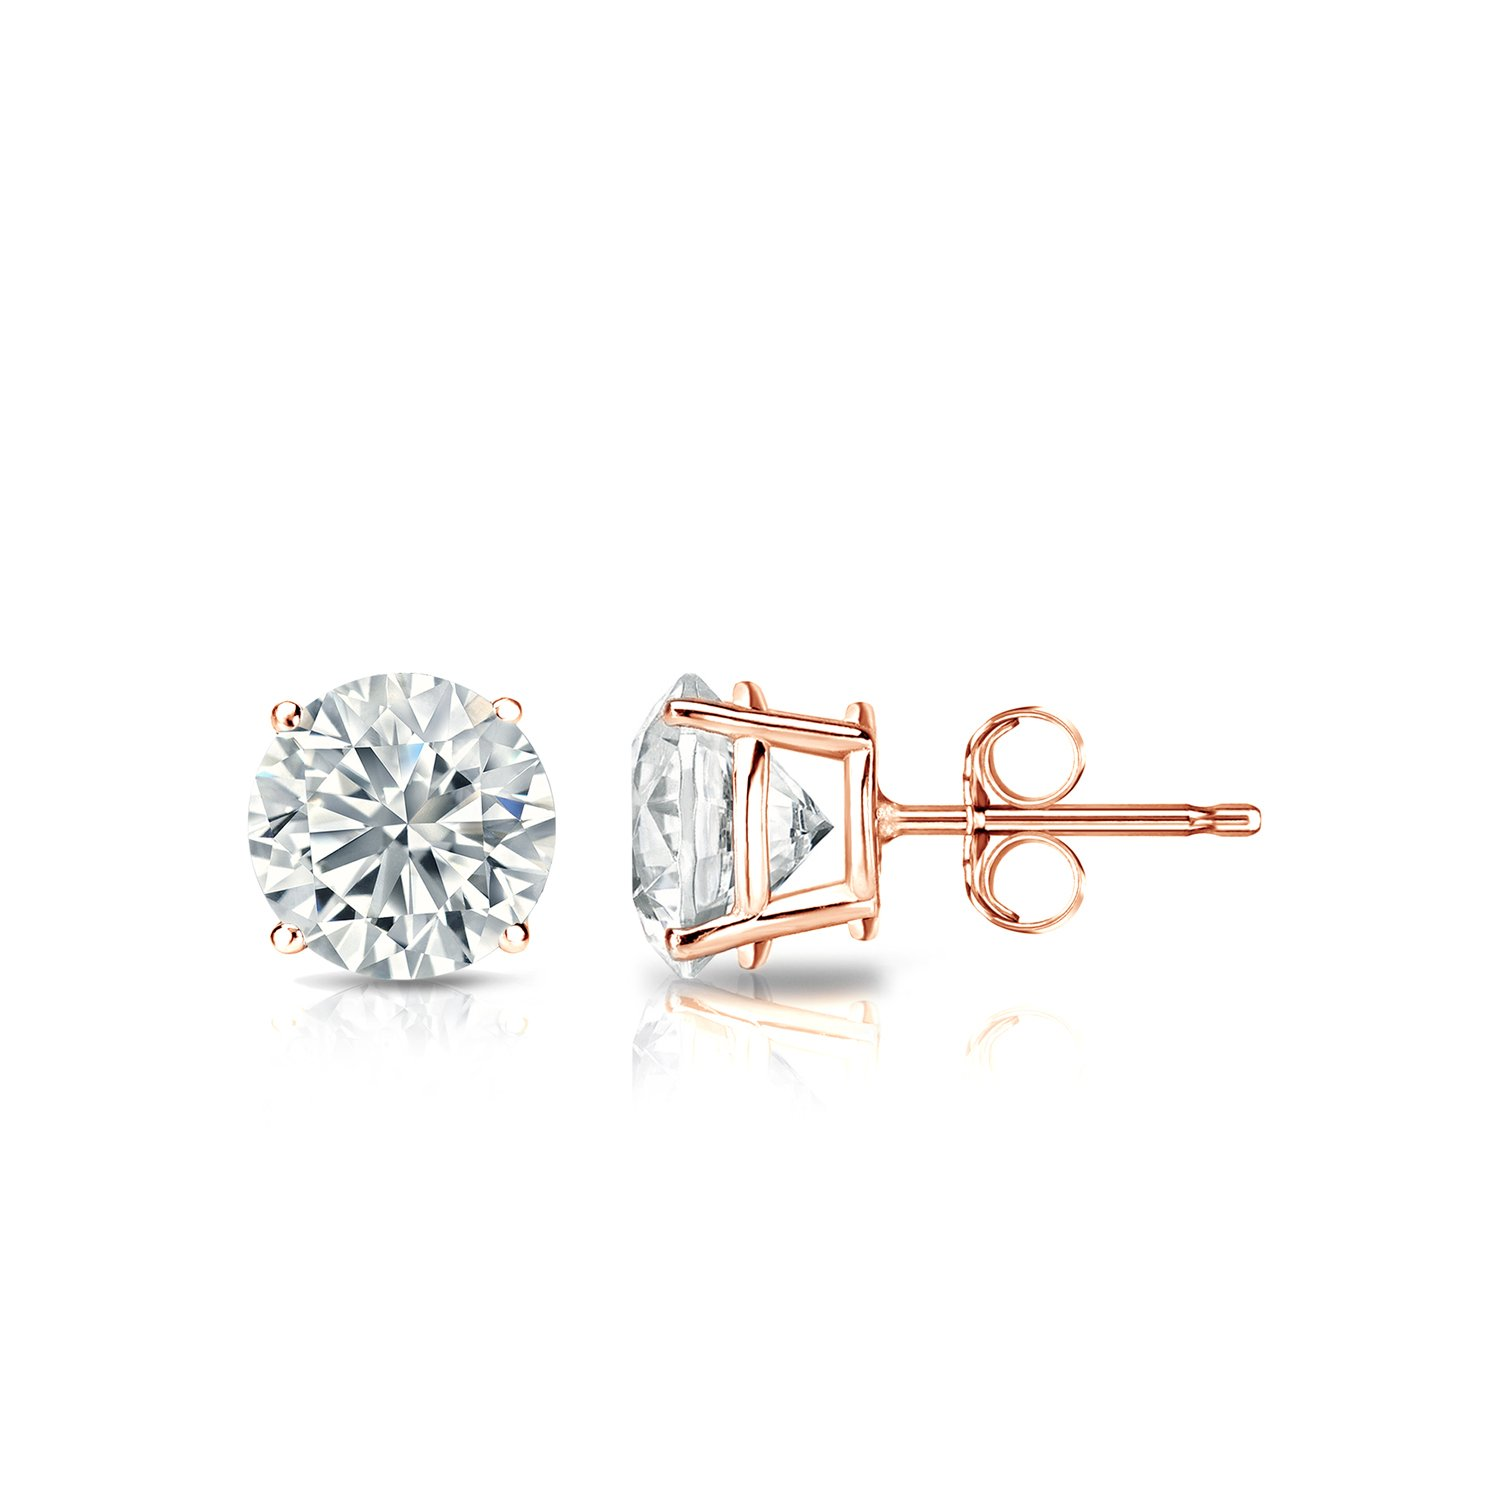 earrings stud in prong white bijoux with solitaire round cut majesty diamond martini w o screwbacks setting gold